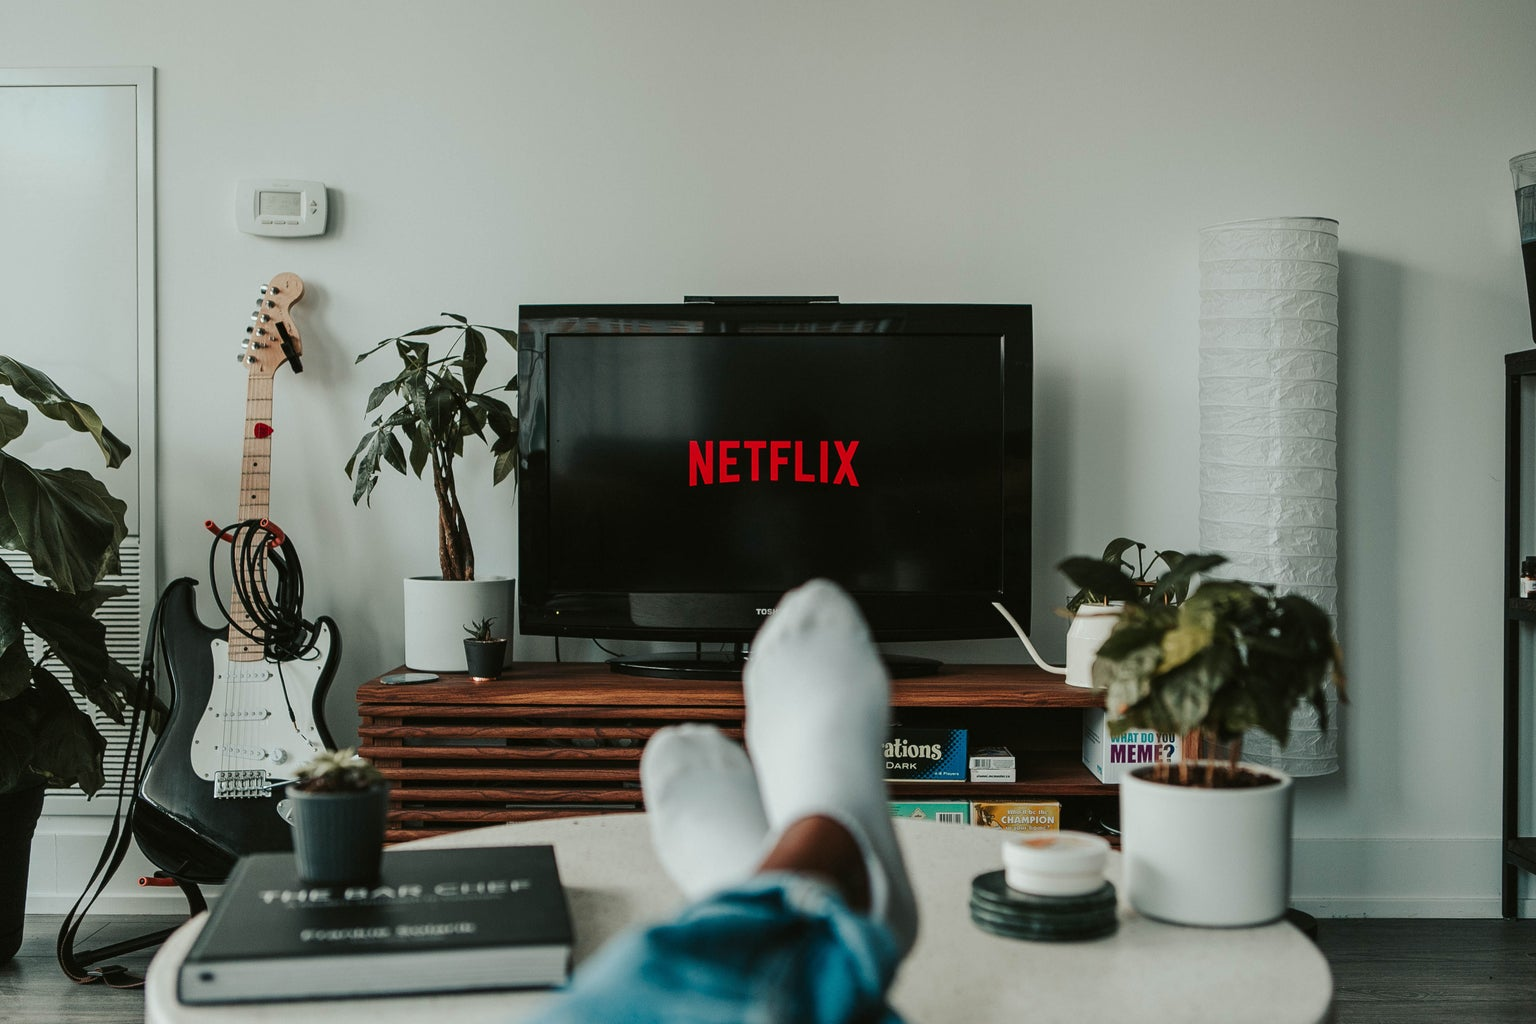 person on couch with netflix tv logo